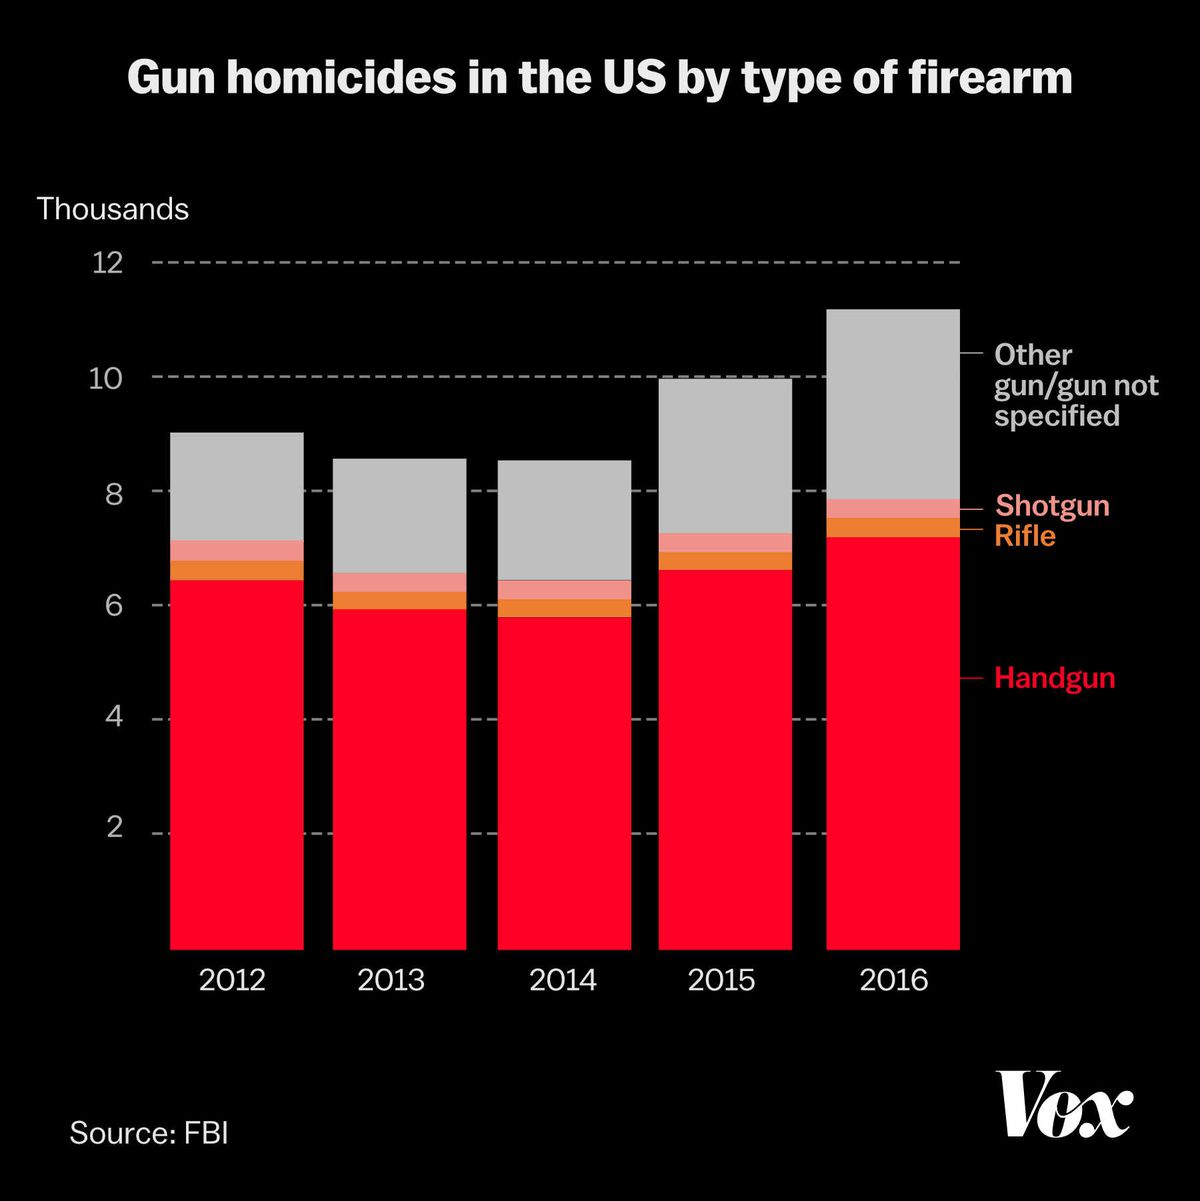 Chart of gun homicides by type of firearm; handguns are involved in the great majority of homicides from 2012-1016